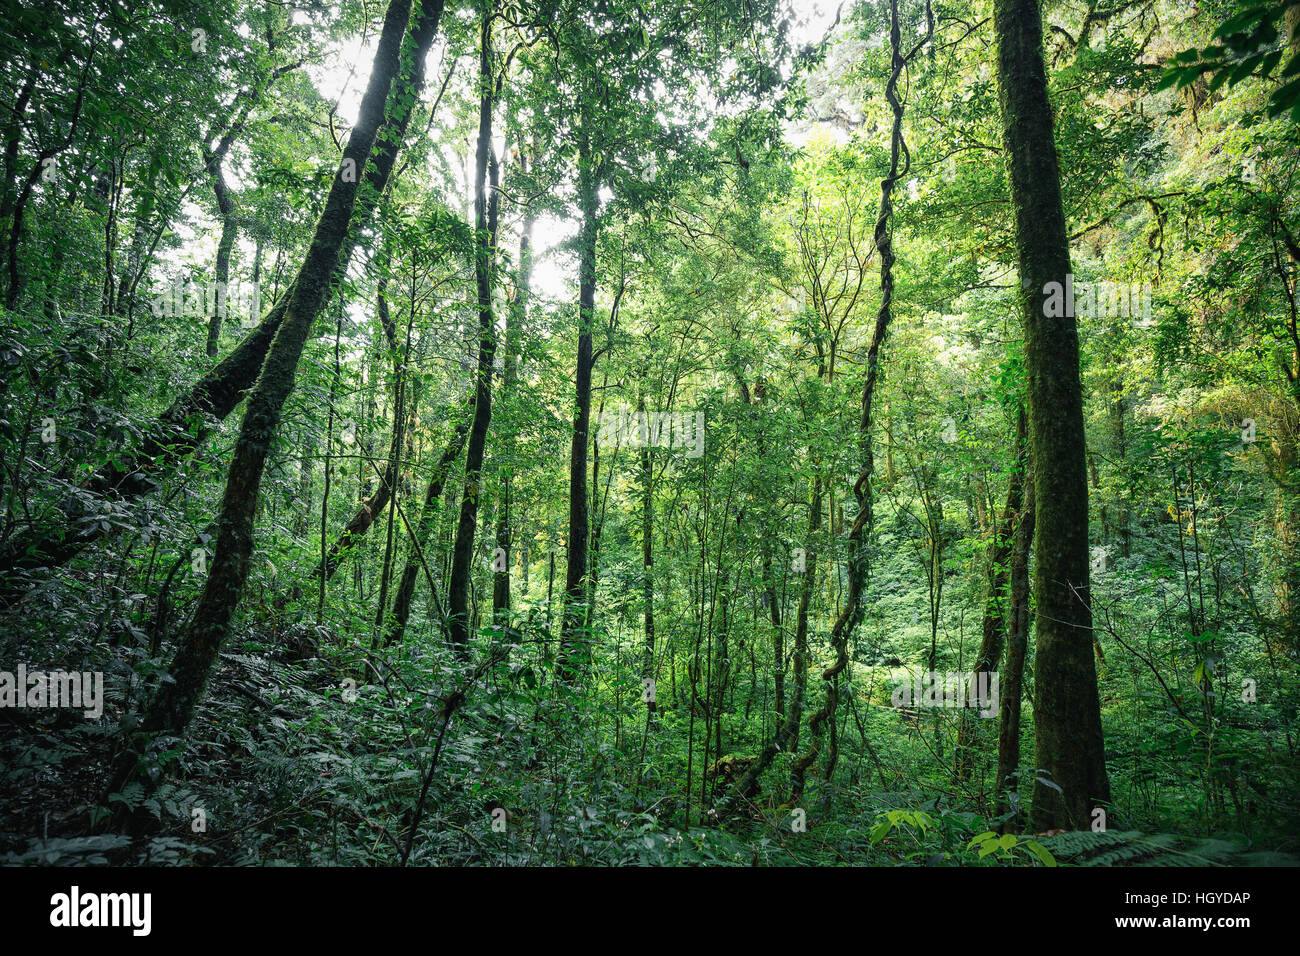 The current market favors stock pickers.amrn in some market the best approach is to trade the indices, and in some markets the best approach is to trade individual stocks. Green Trees Inside Tropical Evergreen Forest In Of Thailand Stock Photo Alamy